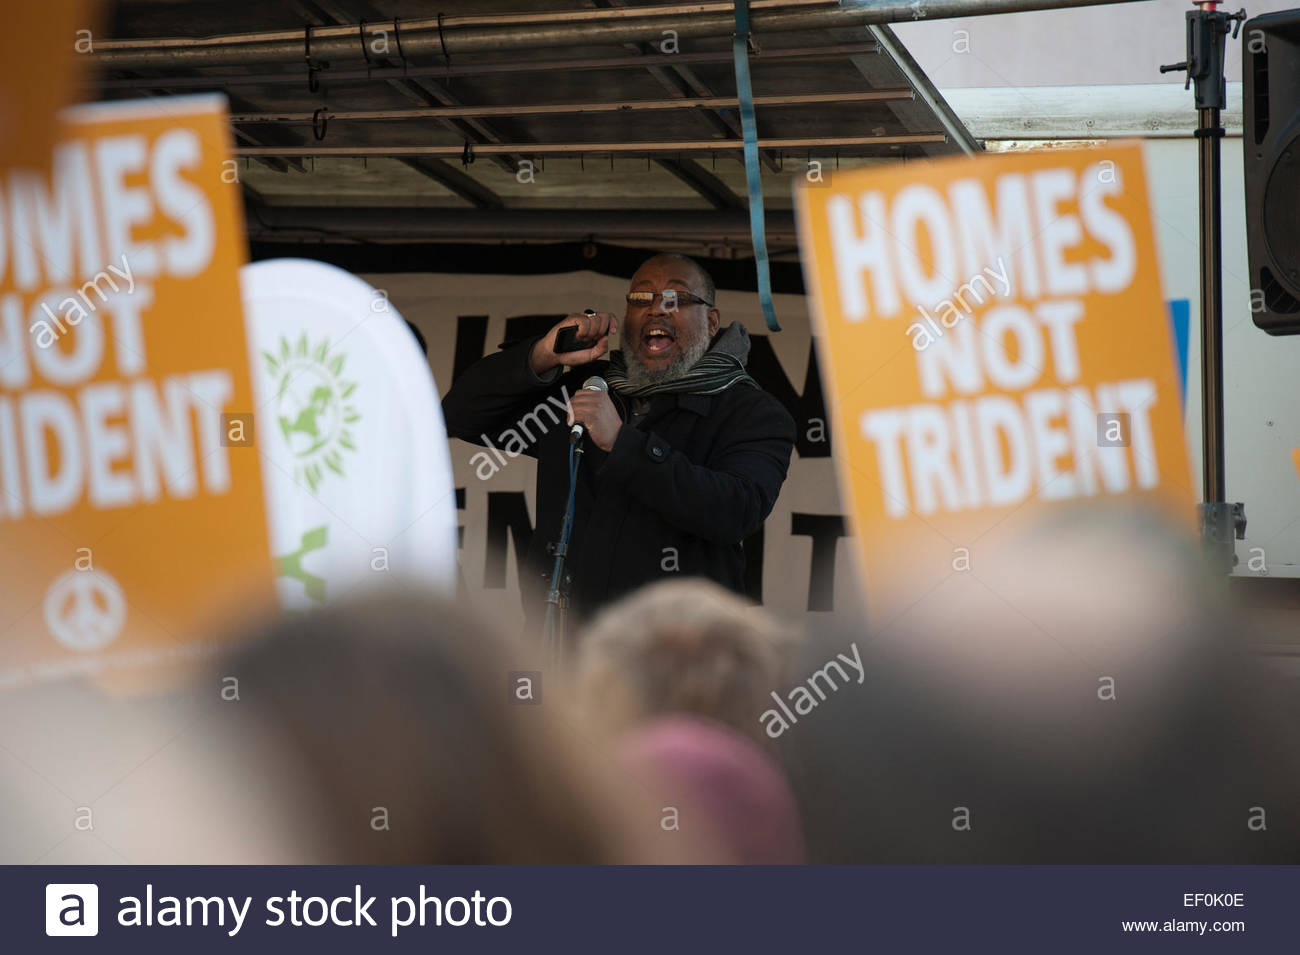 Parliament Square, Westminster, City of London, UK. 24 January 2015. Wrap Up Trident Demonstration. Khalil Charles, Stock Photo